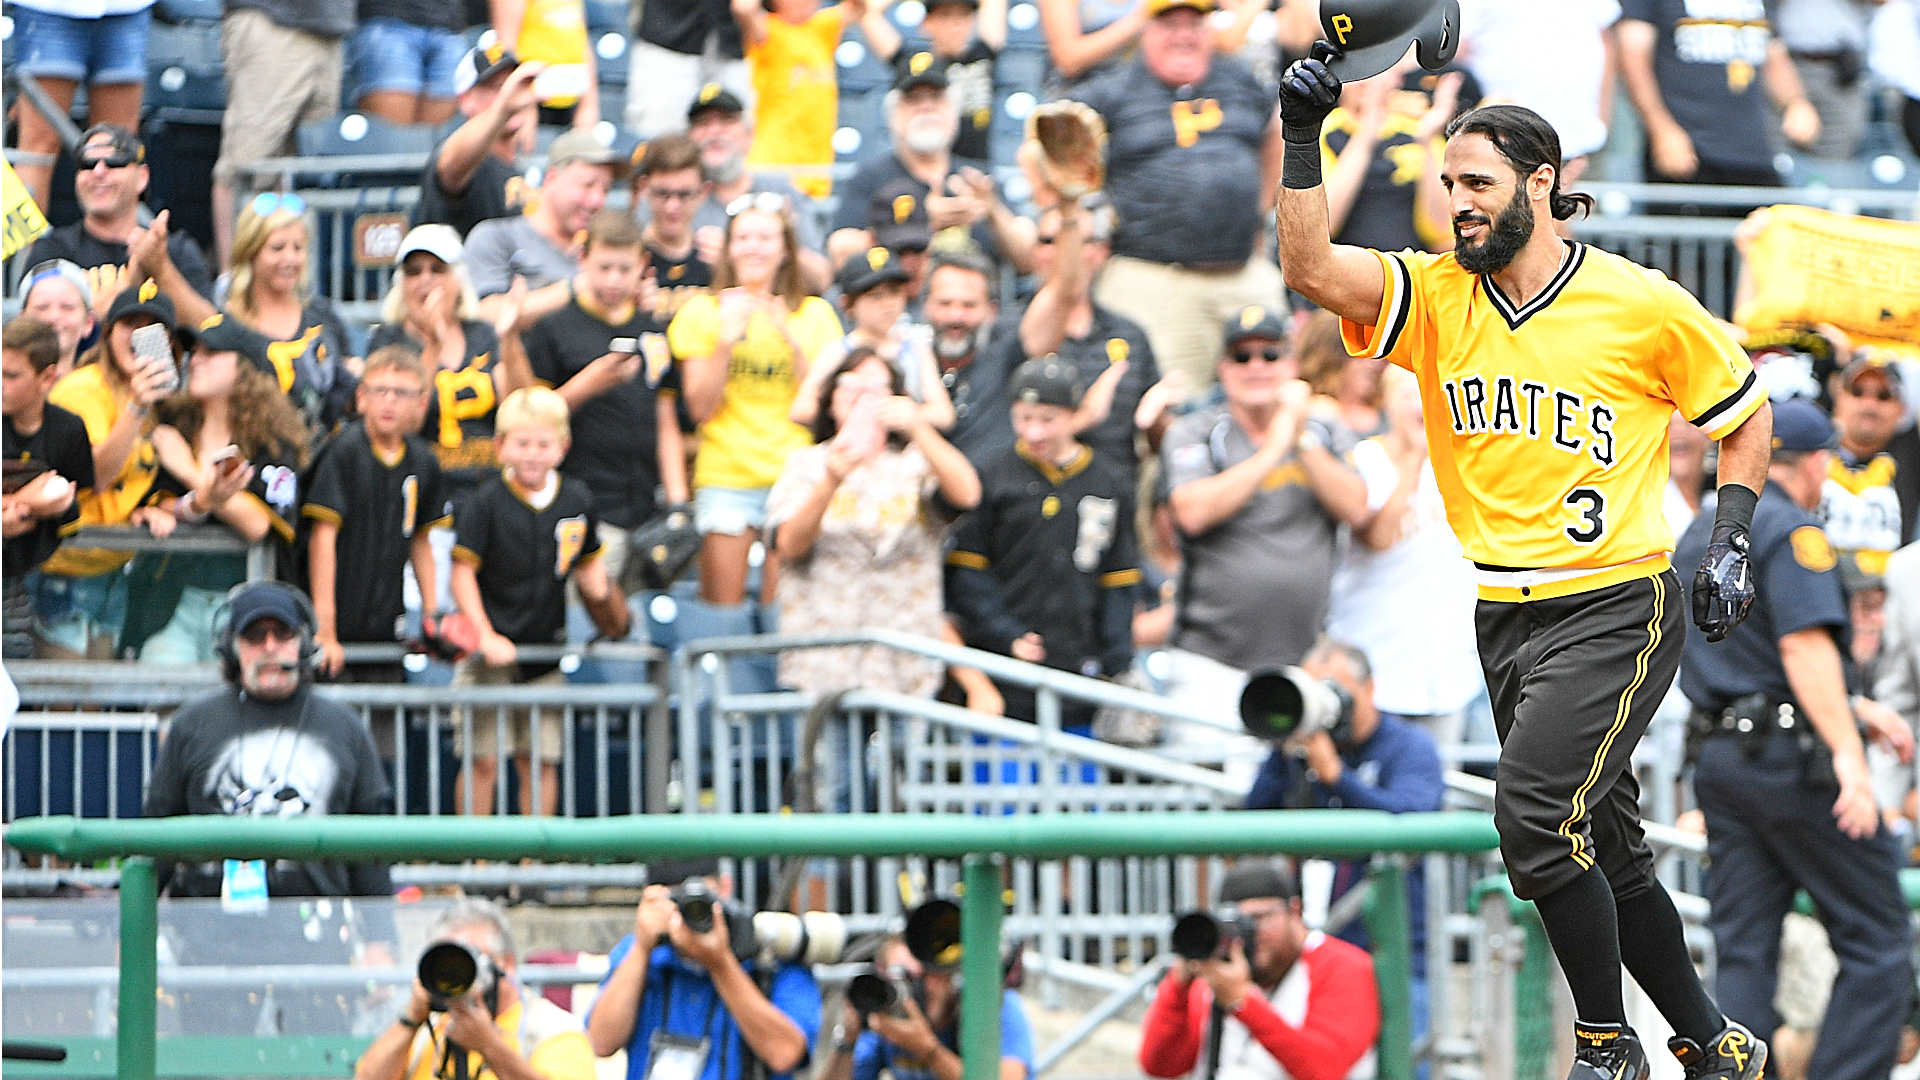 Braves trade Sean Rodriguez to Pirates